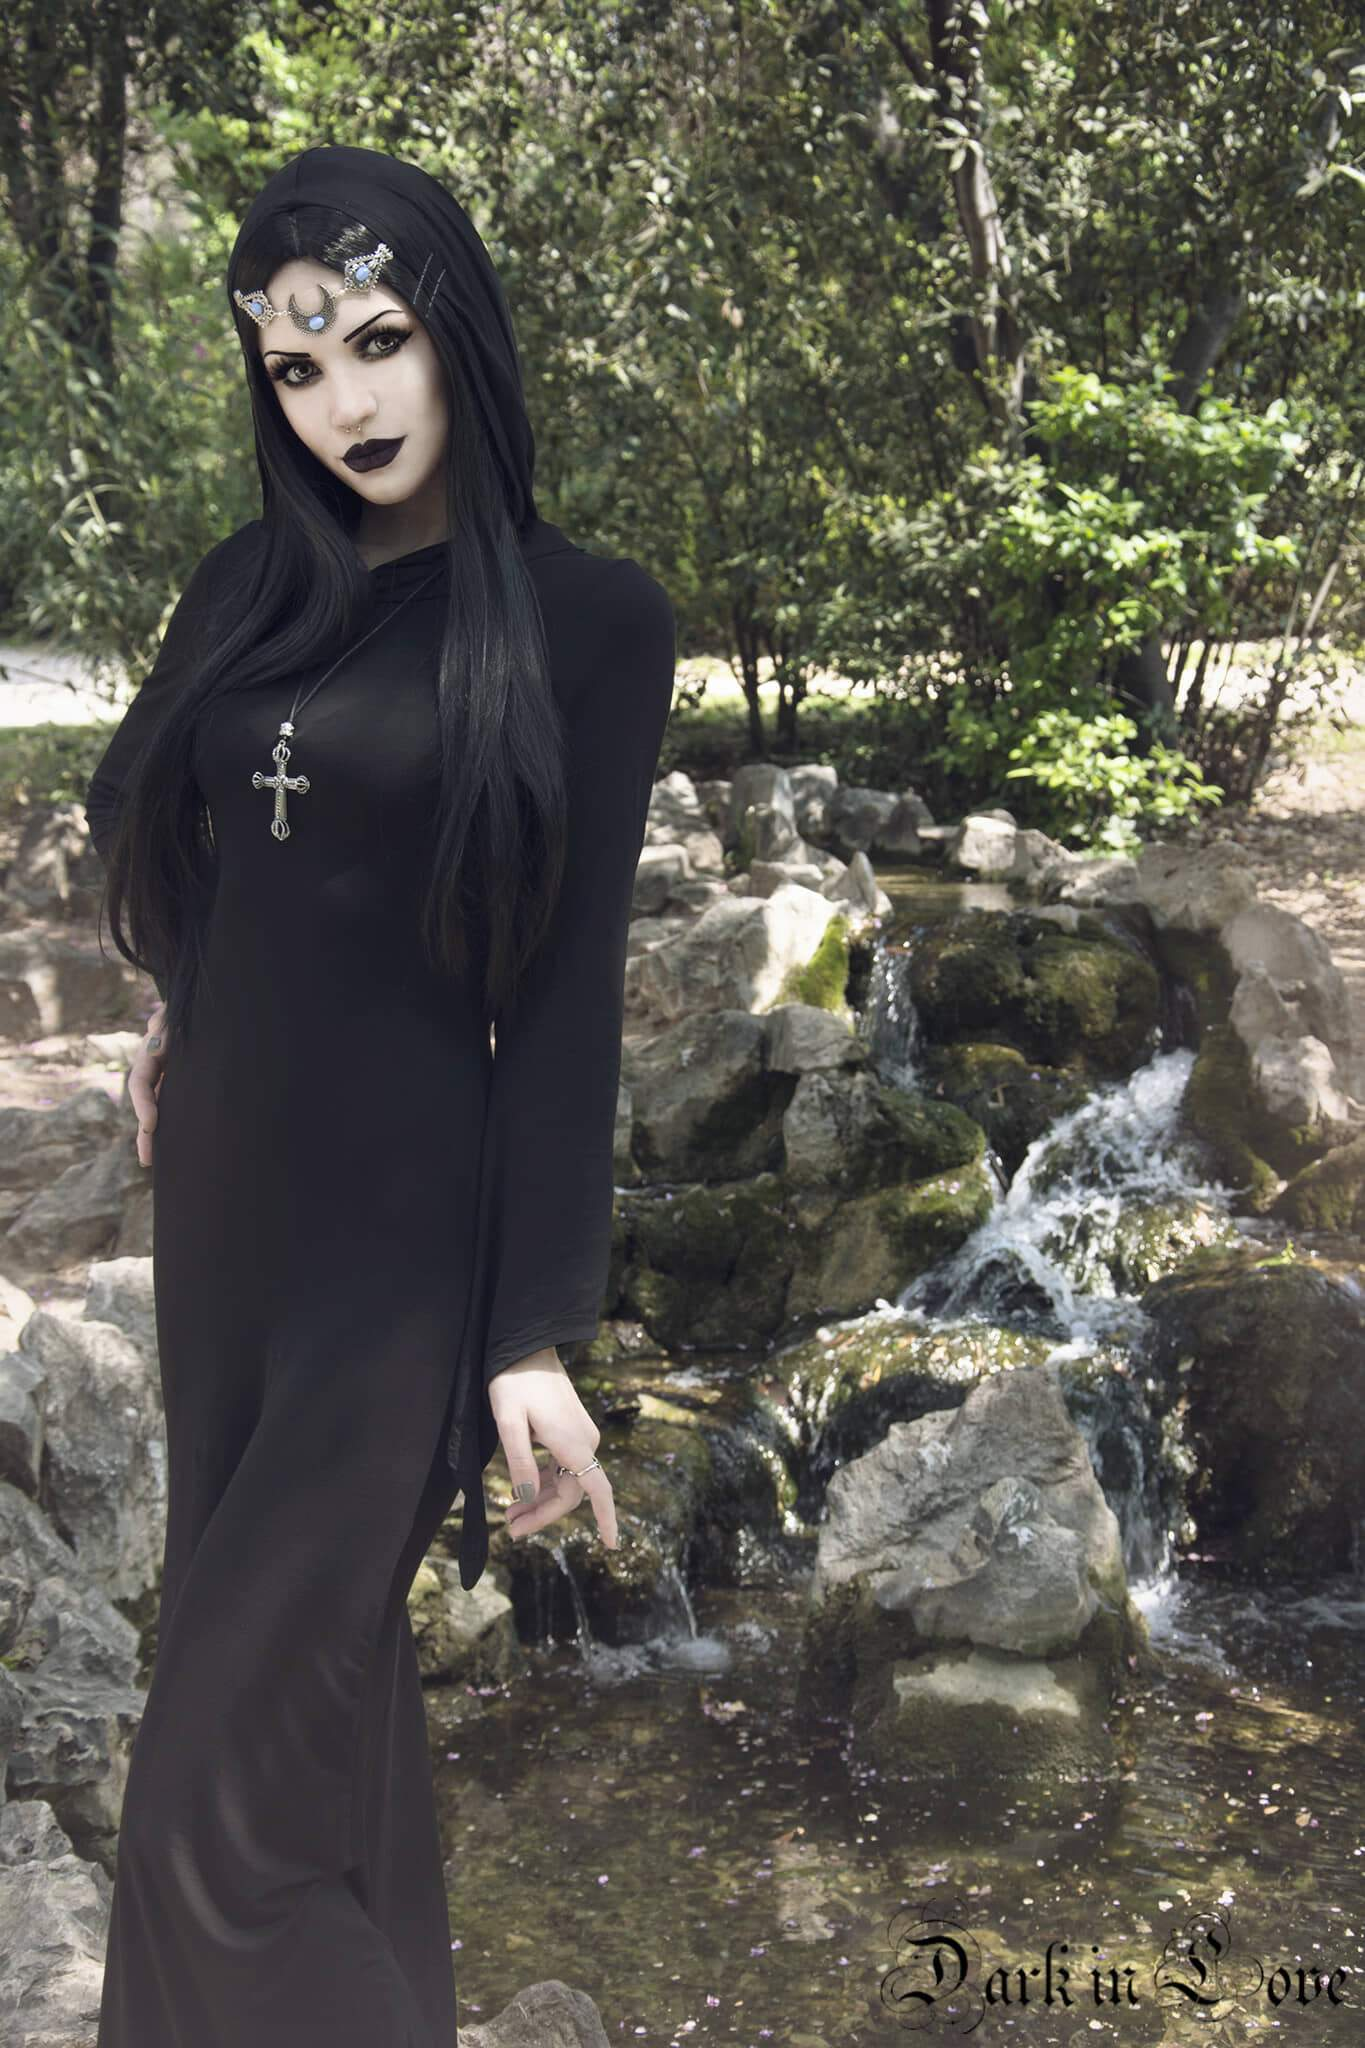 Darkinlove Women Gothic Dress Black Hooded Backless Stage Performance Halloween Witch Long Dresses